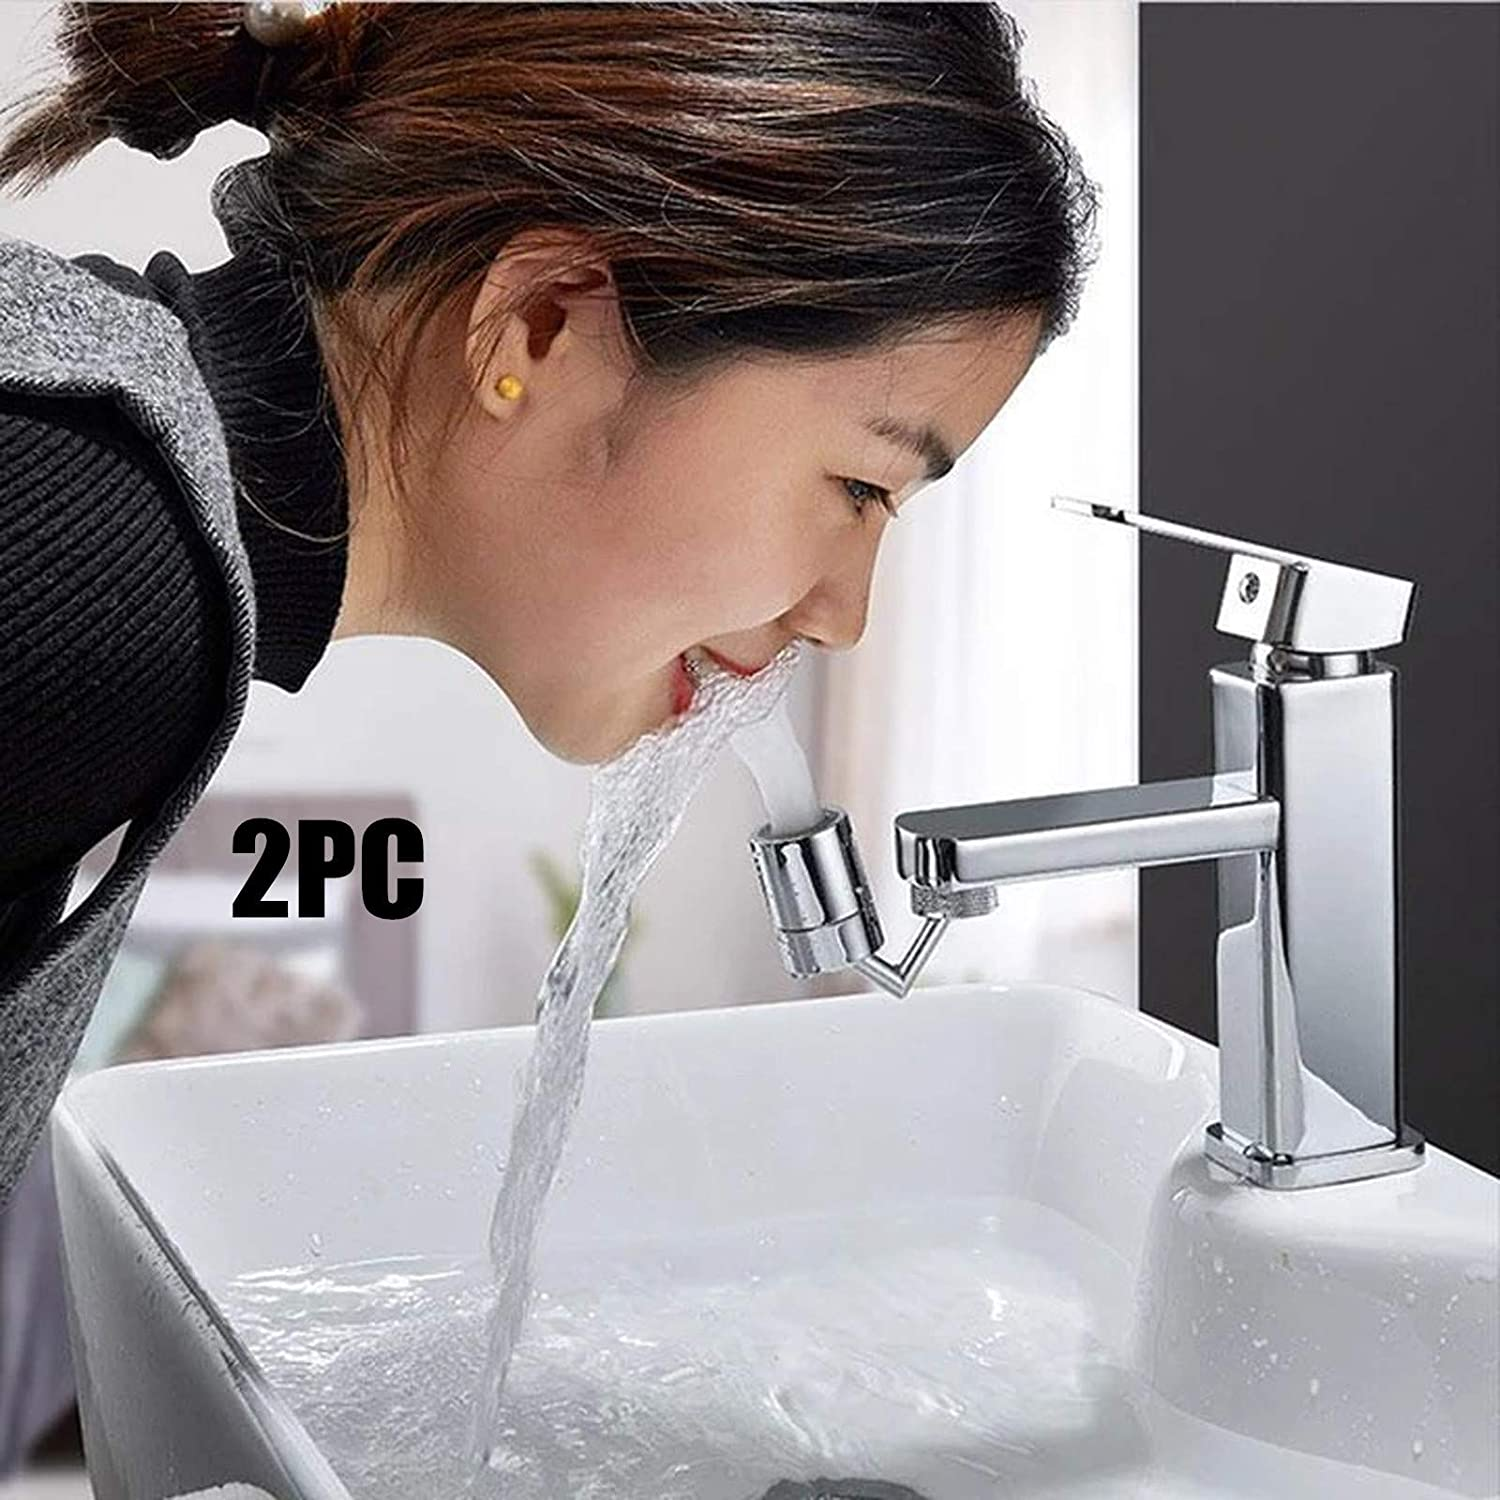 2PCS Universal Splash Filter Faucet,720/° Rotating Faucet Nozzle,Movable Kitchen Tap Head Water Saving Faucet Extender Sprayer Sink Spray Convenient to Wash Your Face and Gargle